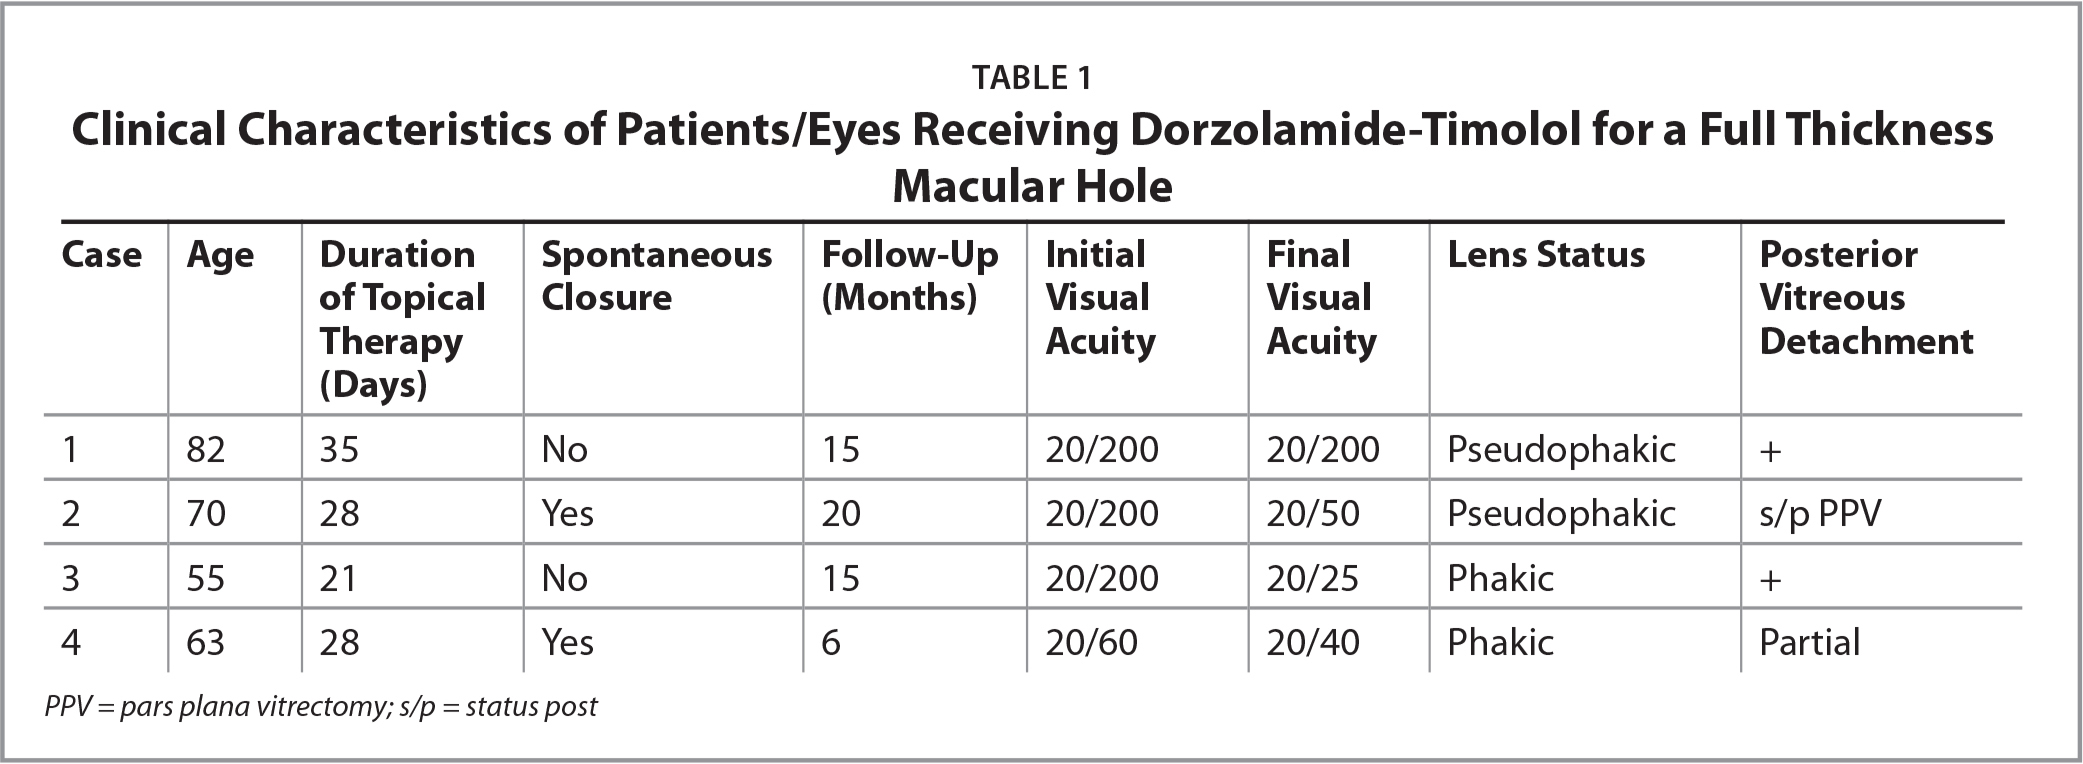 Clinical Characteristics of Patients/Eyes Receiving Dorzolamide-Timolol for a Full Thickness Macular Hole